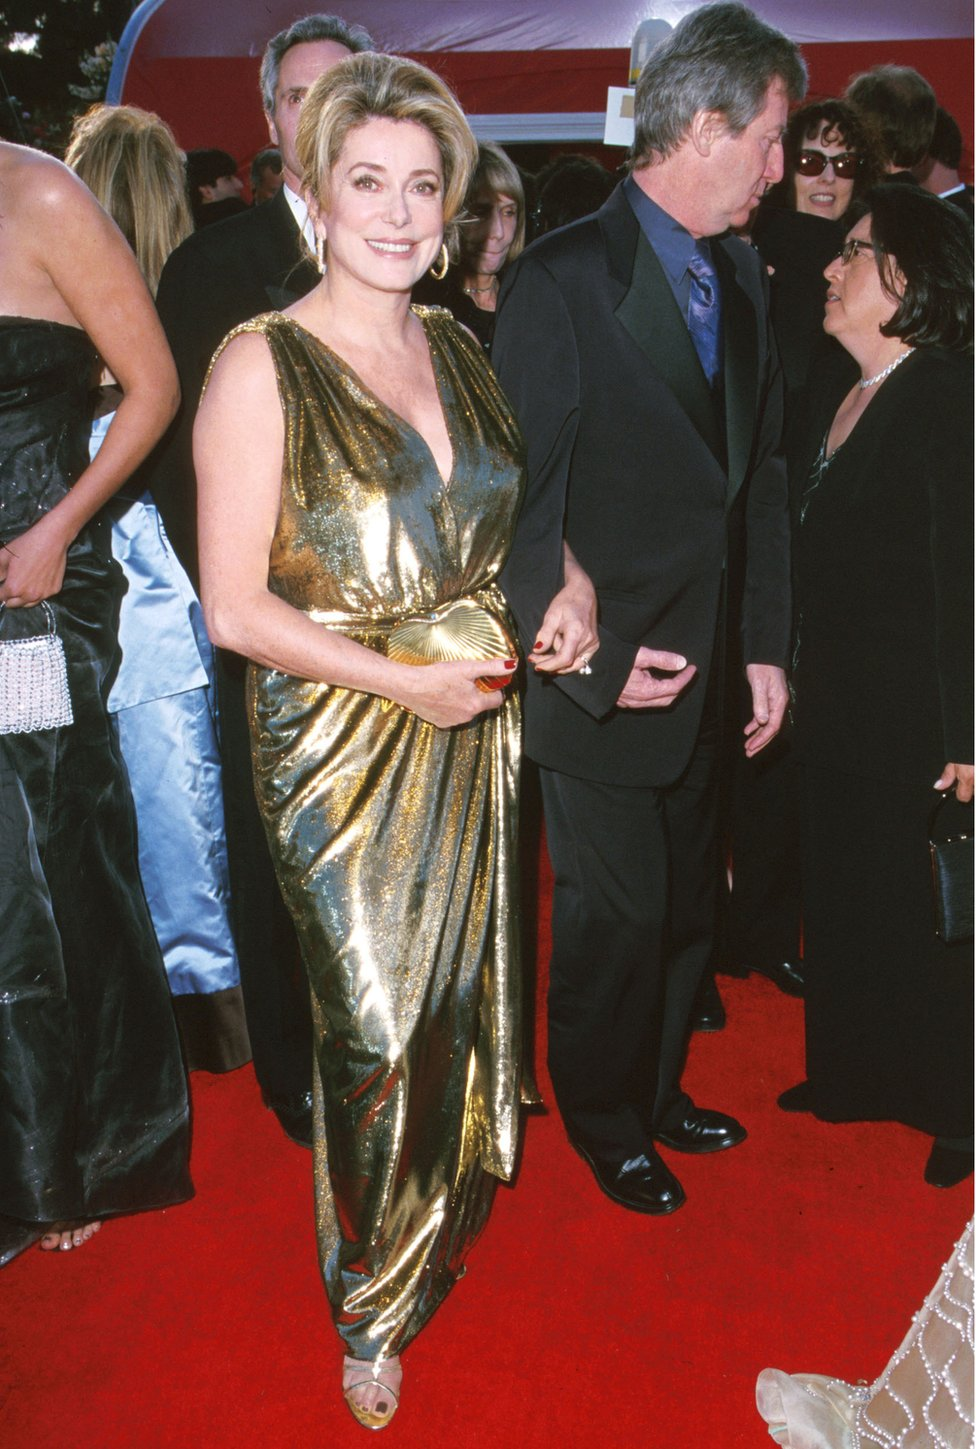 Catherine Deneuve at the Oscars in a long gold evening dress in 2000